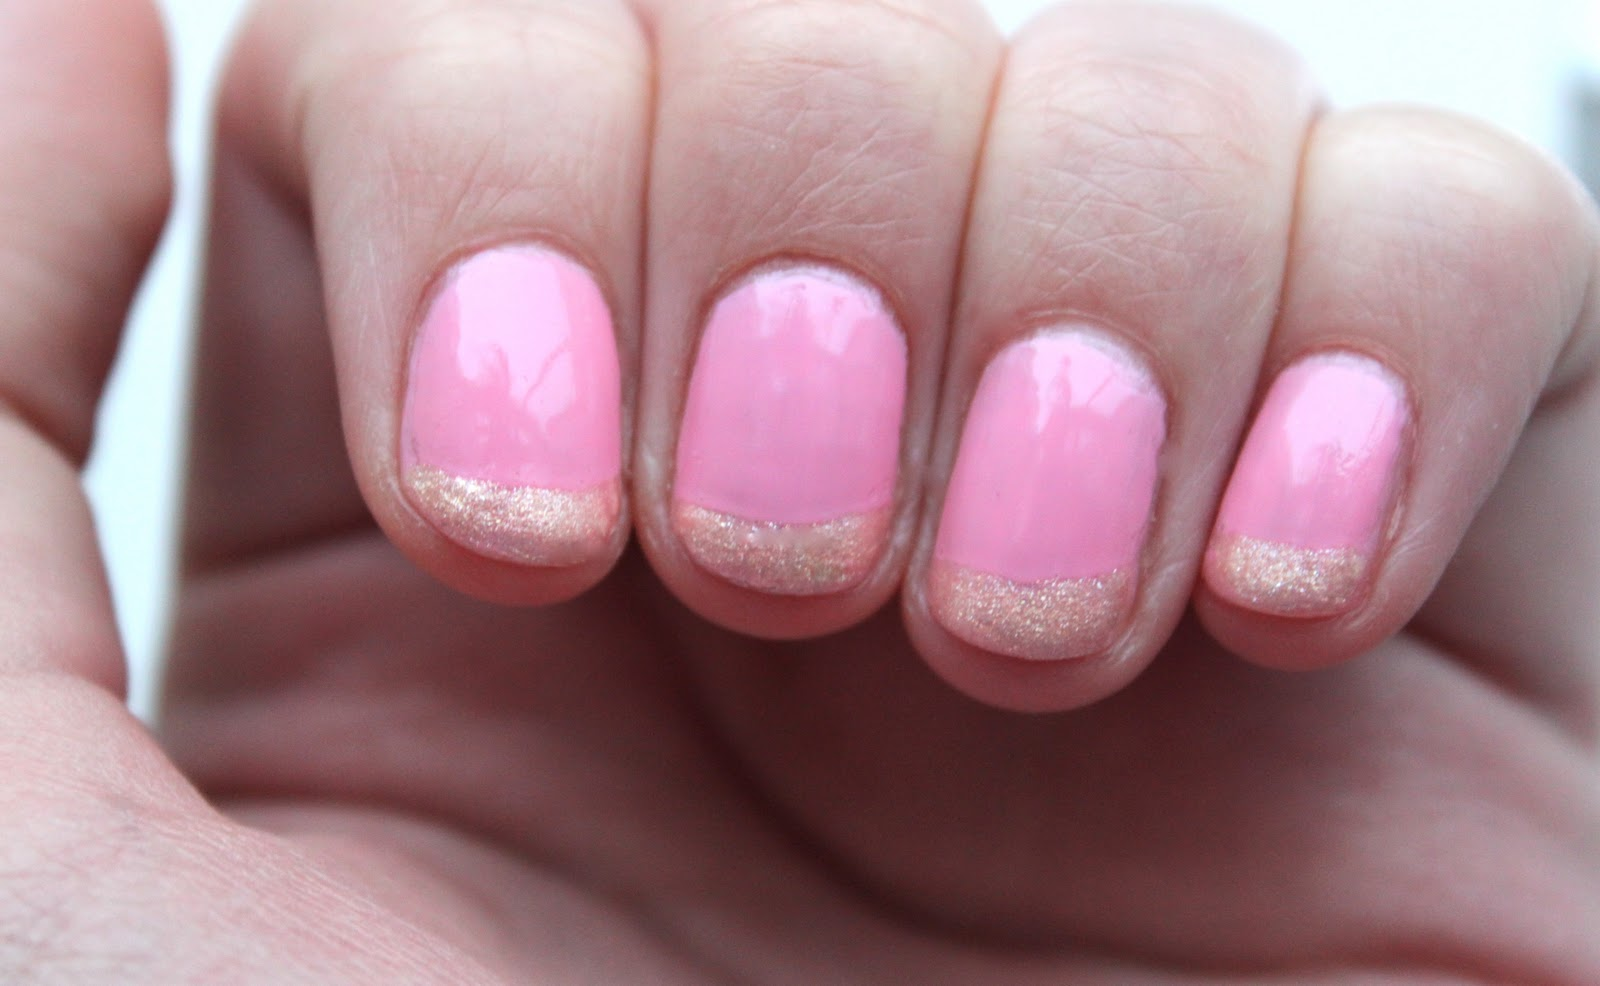 Polishes Barry M Strawberry As The Base Colour And Kiss Nail Artist Paint In Pearl Gold On Tips